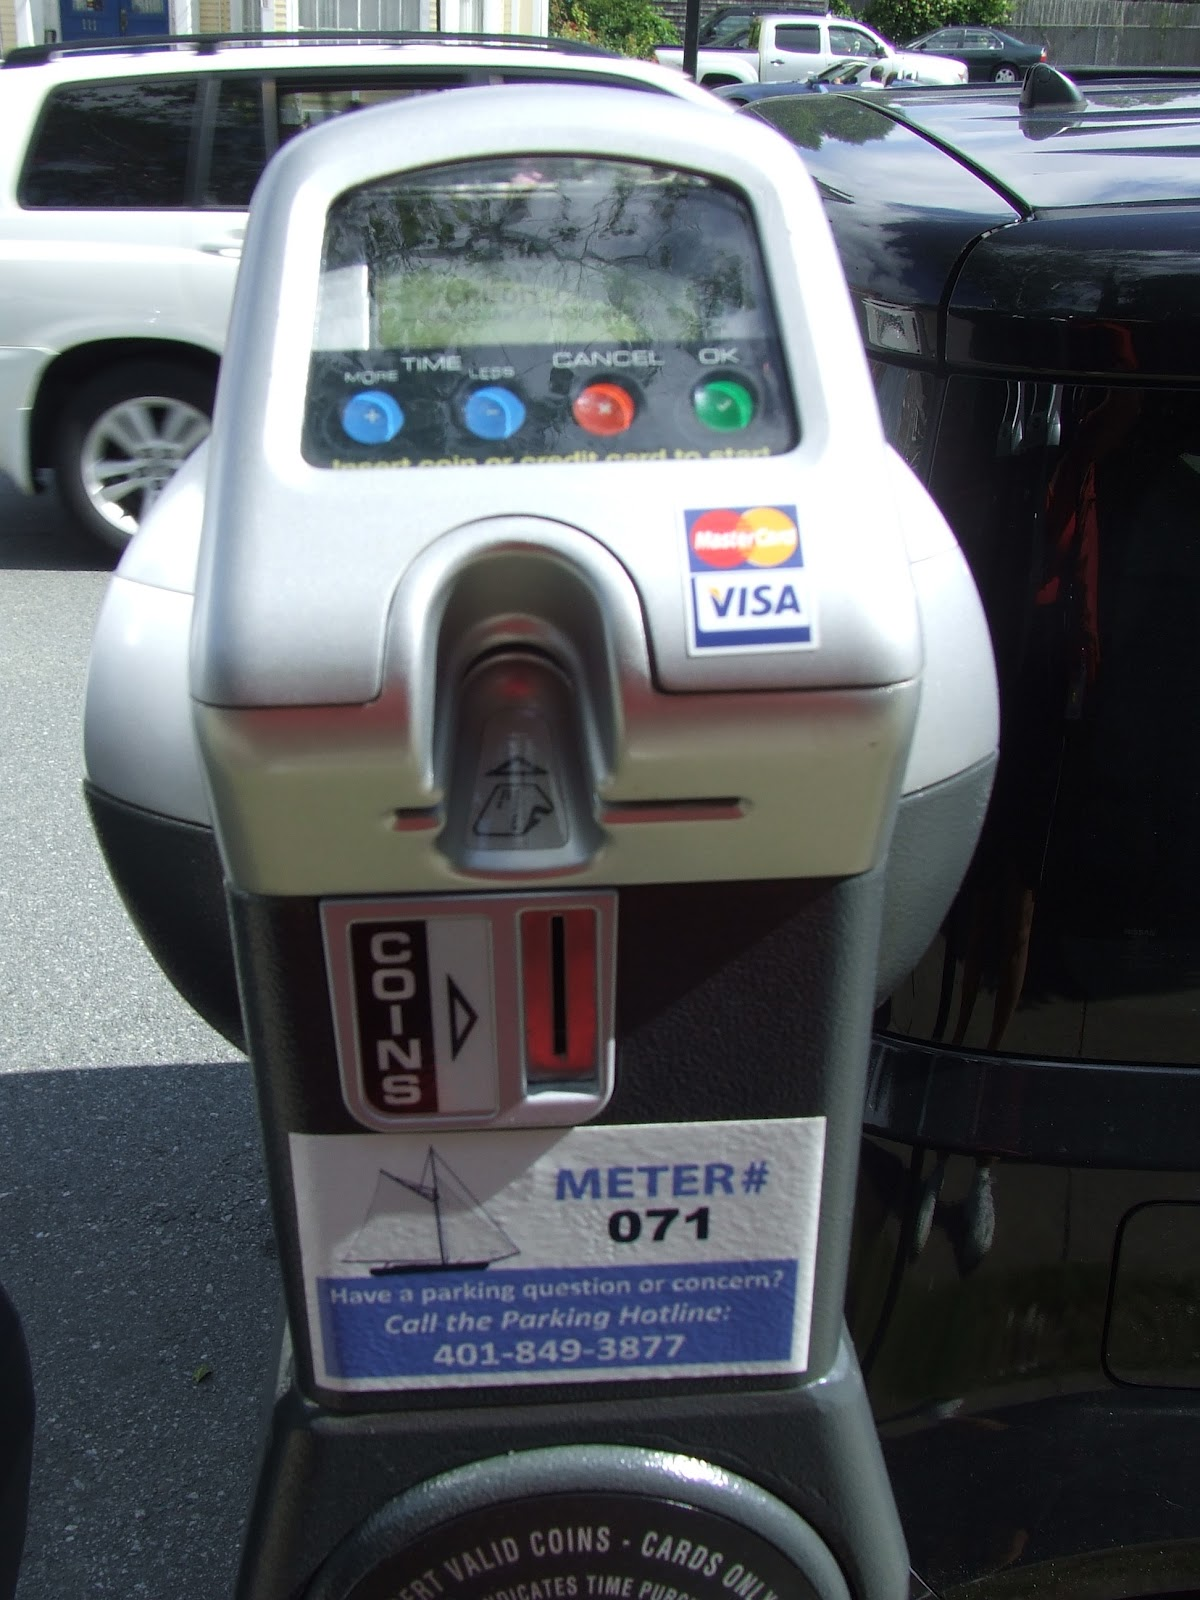 City Council closes in on increasing parking ticket fines from $25